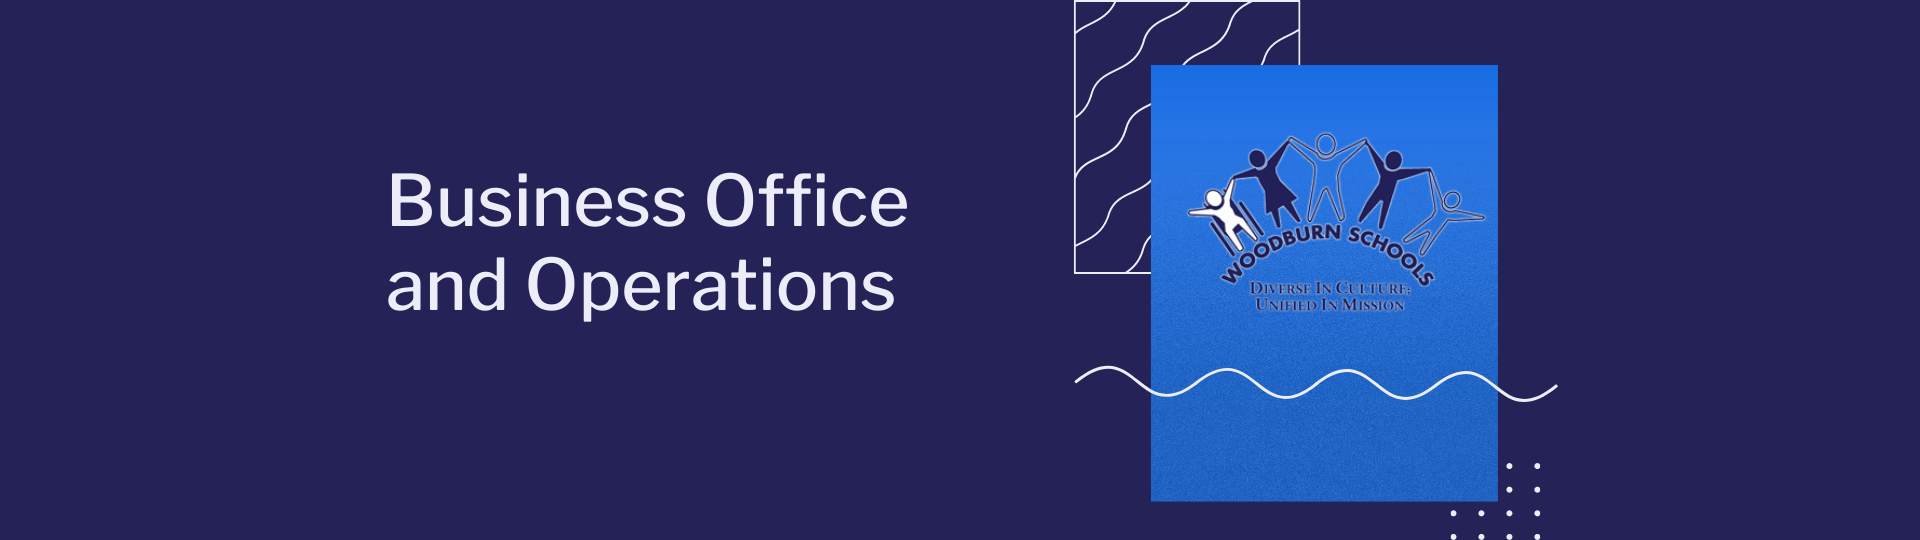 Business Office and Operations